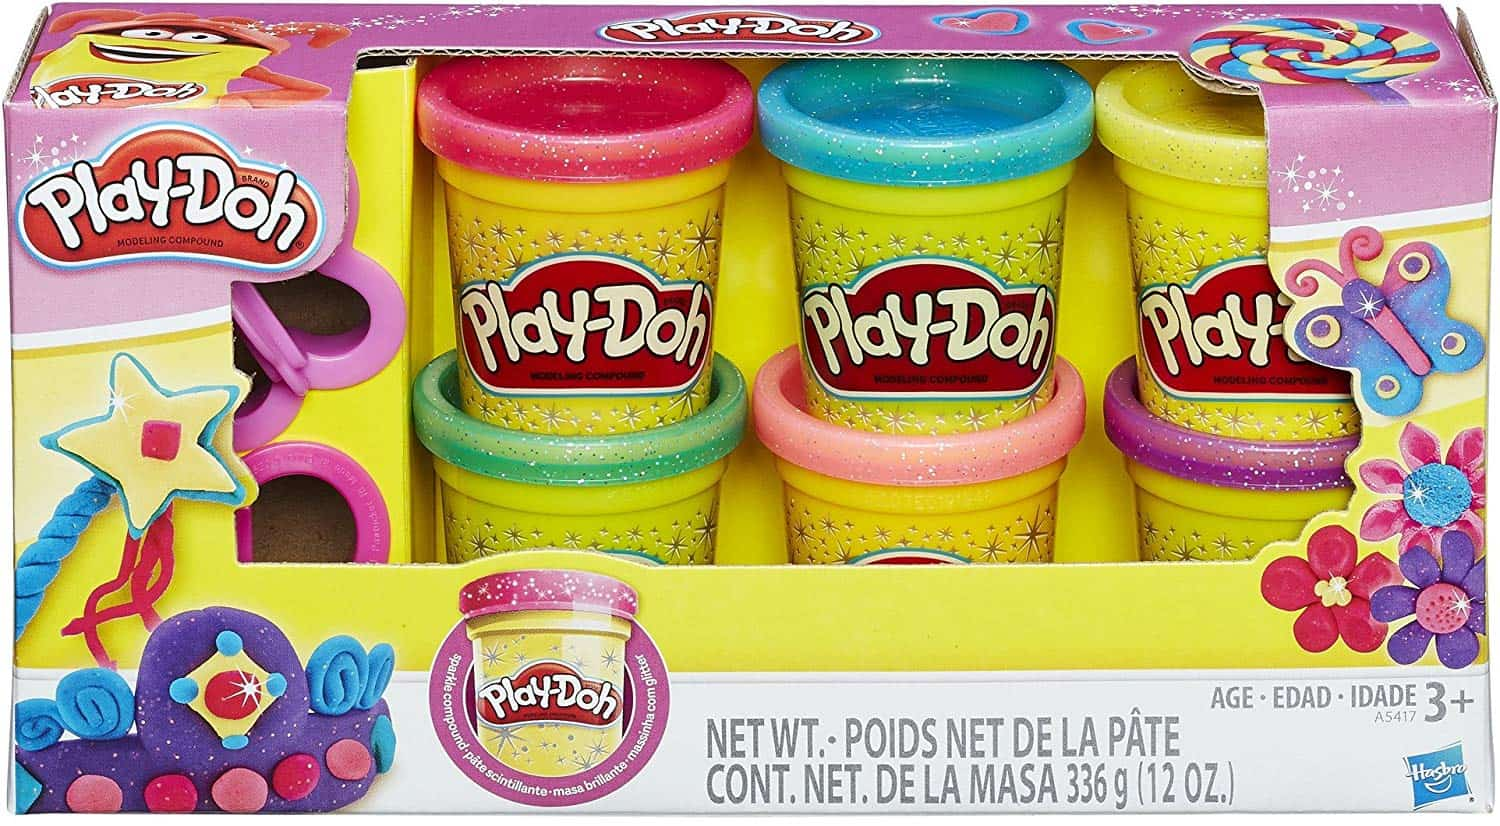 A variety of Play-Doh colors.